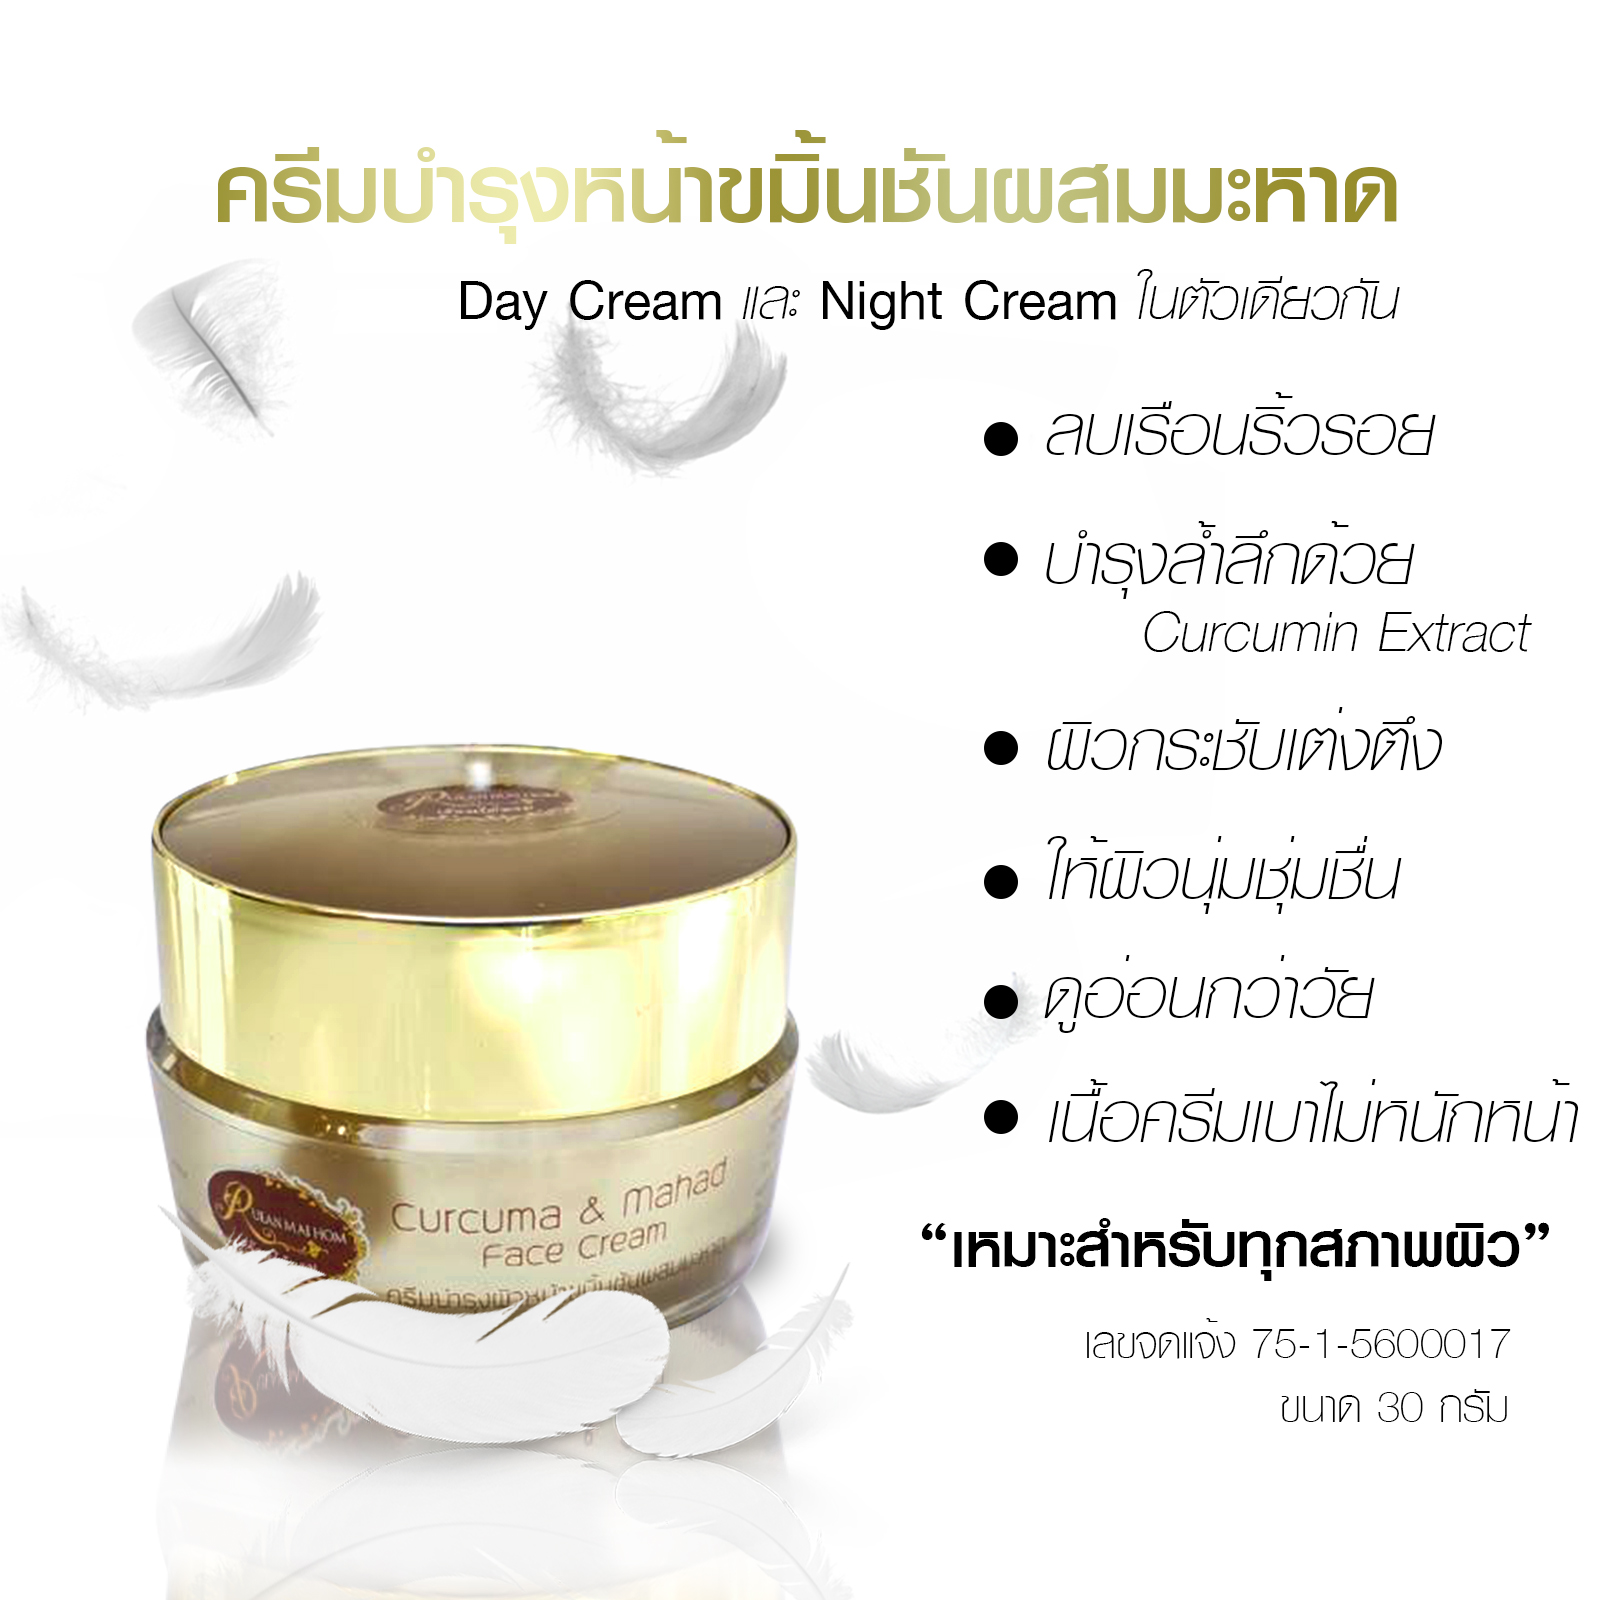 Monkey Jack-Mixed Curcuma Facial Skin Care Cream